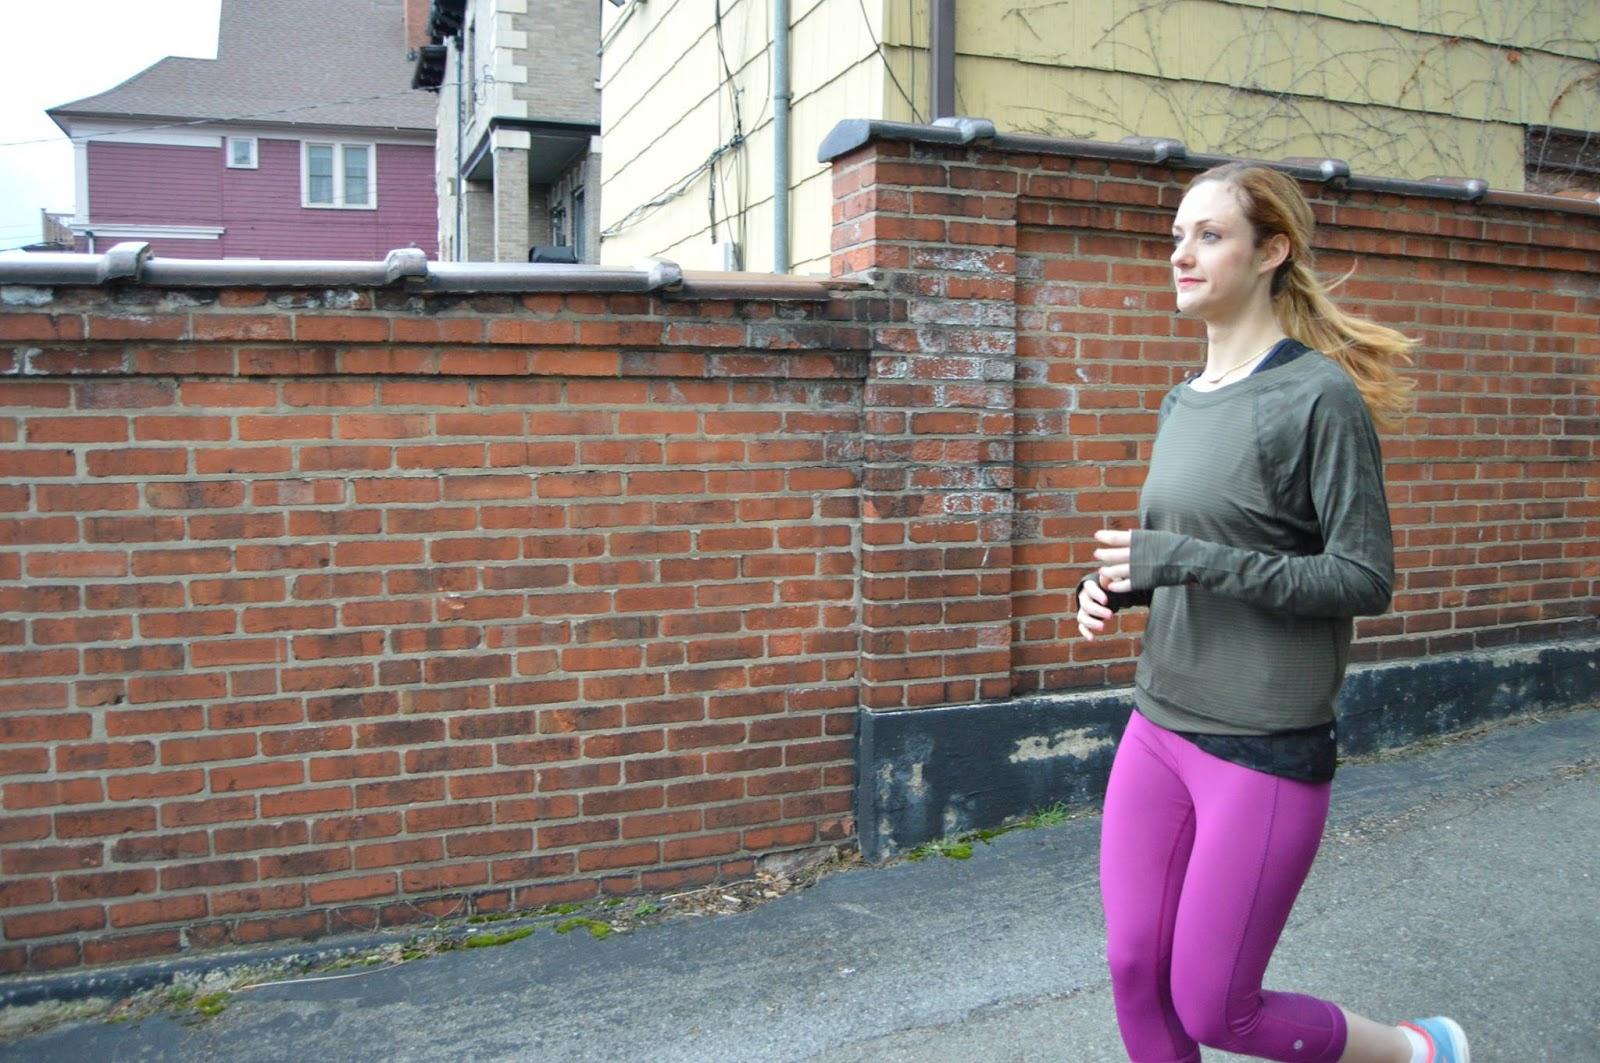 lululemon-run-for-days-longsleeve-crop